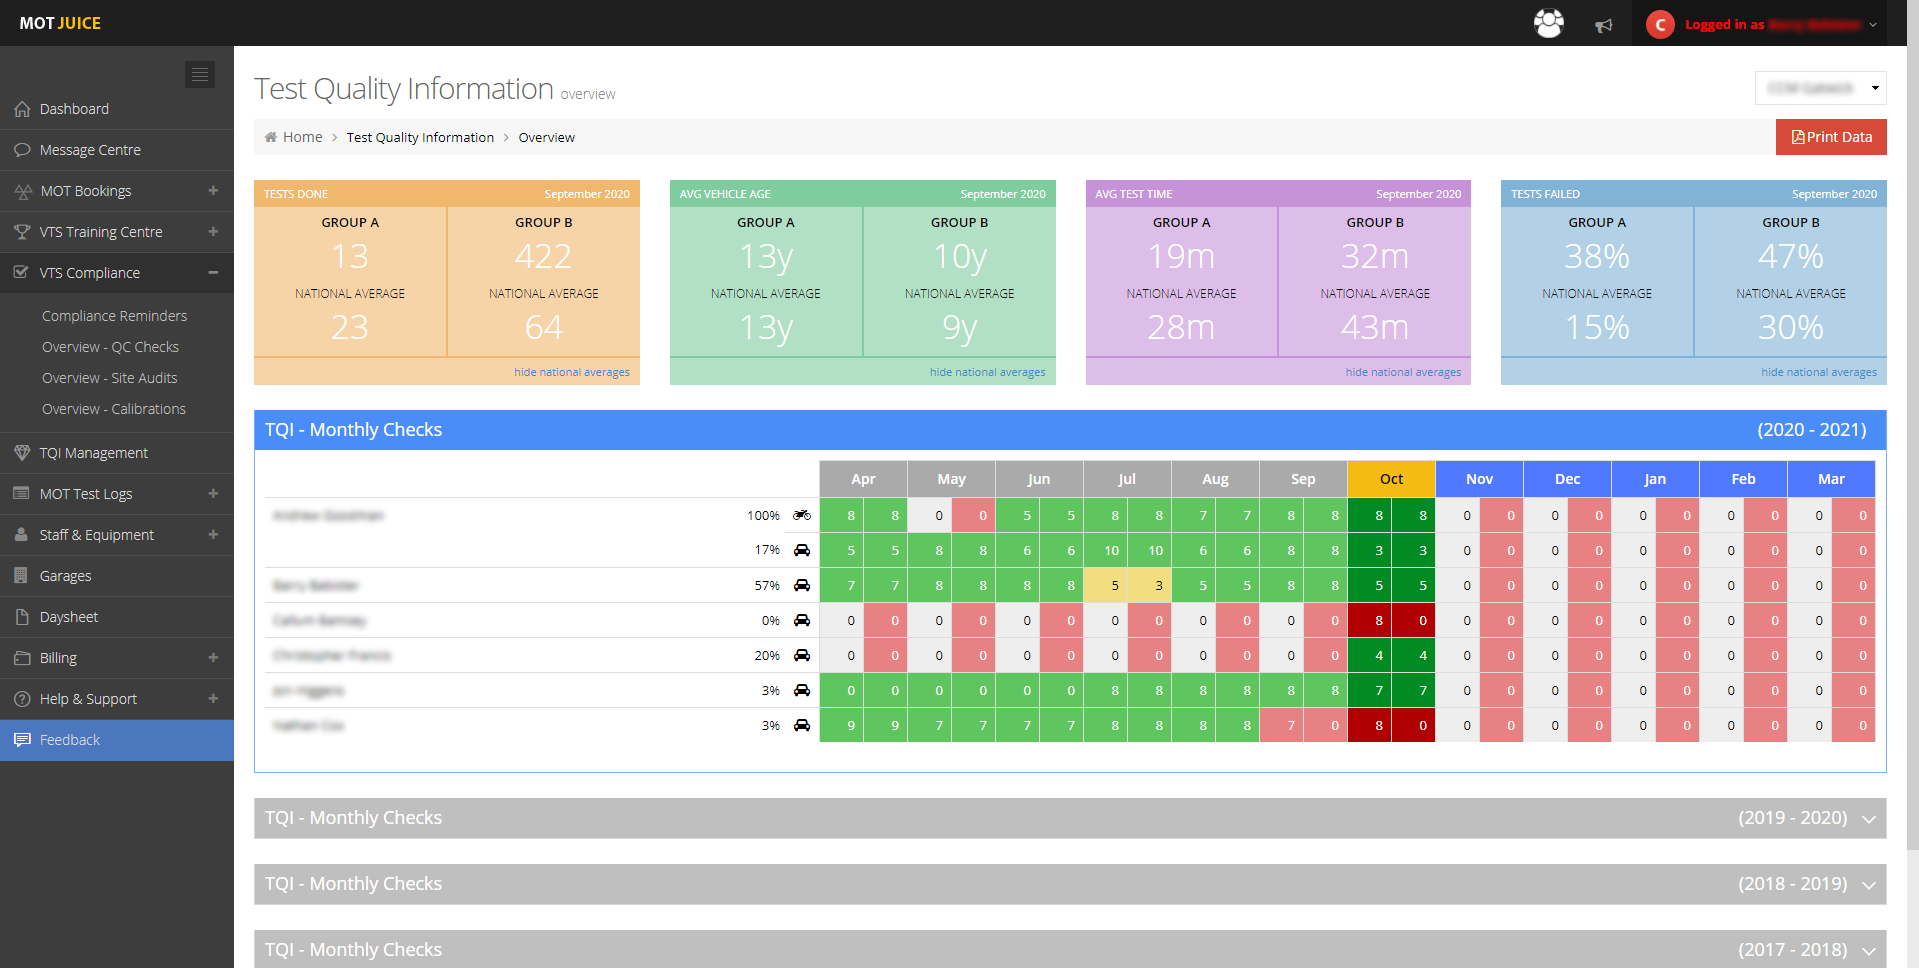 as a site manager, you can oversee all testers and averages from your own dashboard